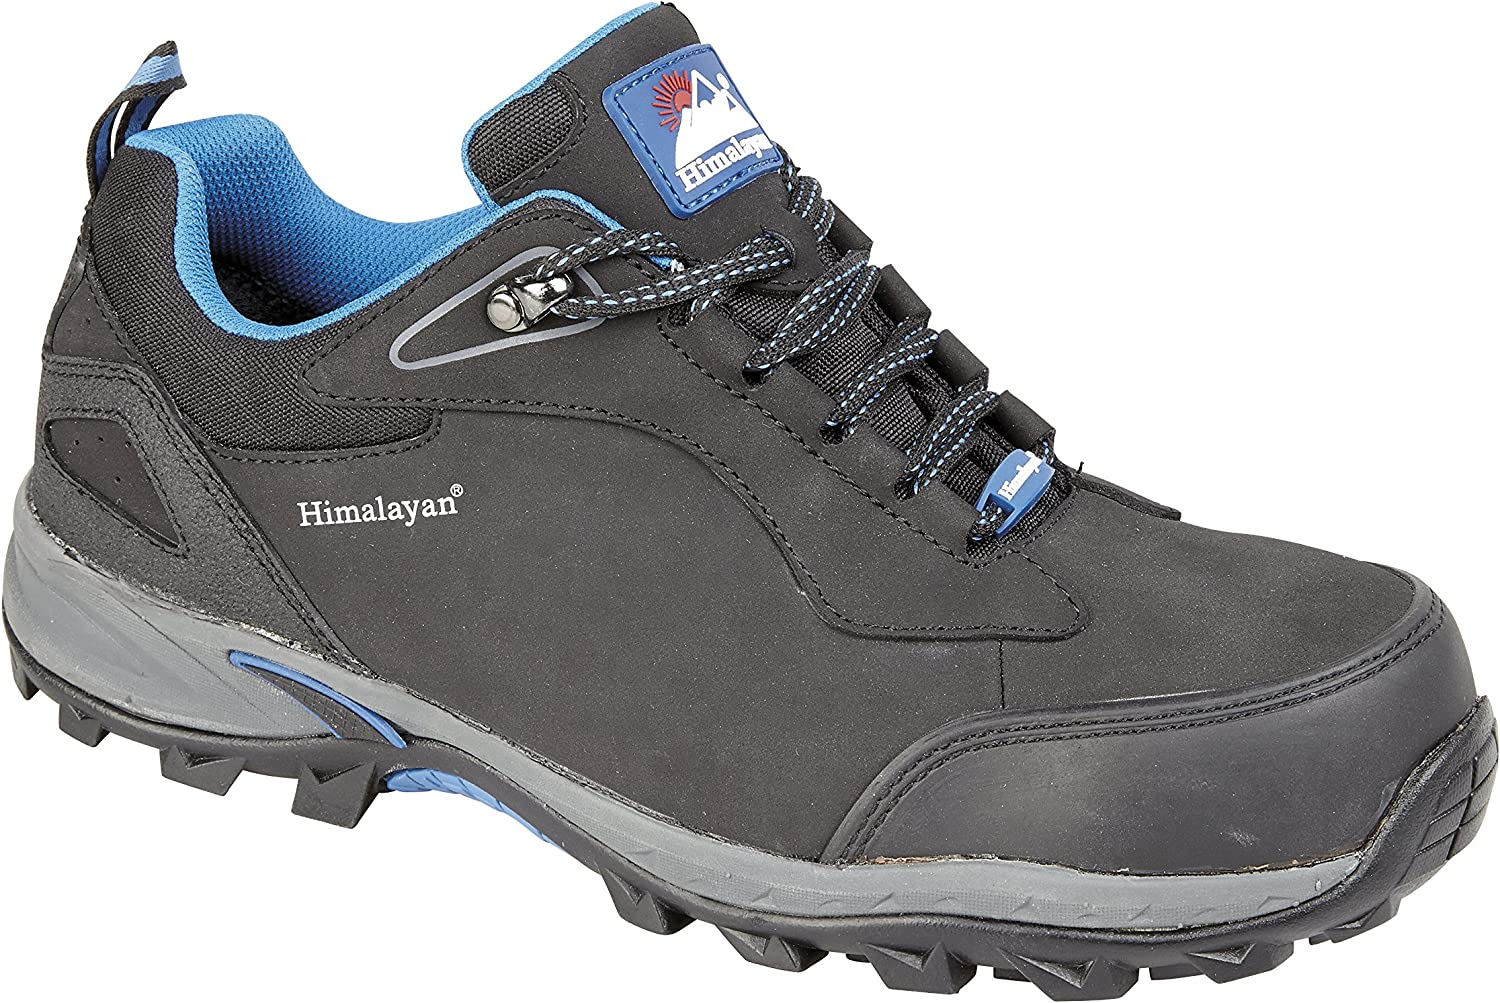 Himalayan 4039 S1P SRC Black Leather Steel Toe Cap Sports Safety Trainers shoes - Size 11